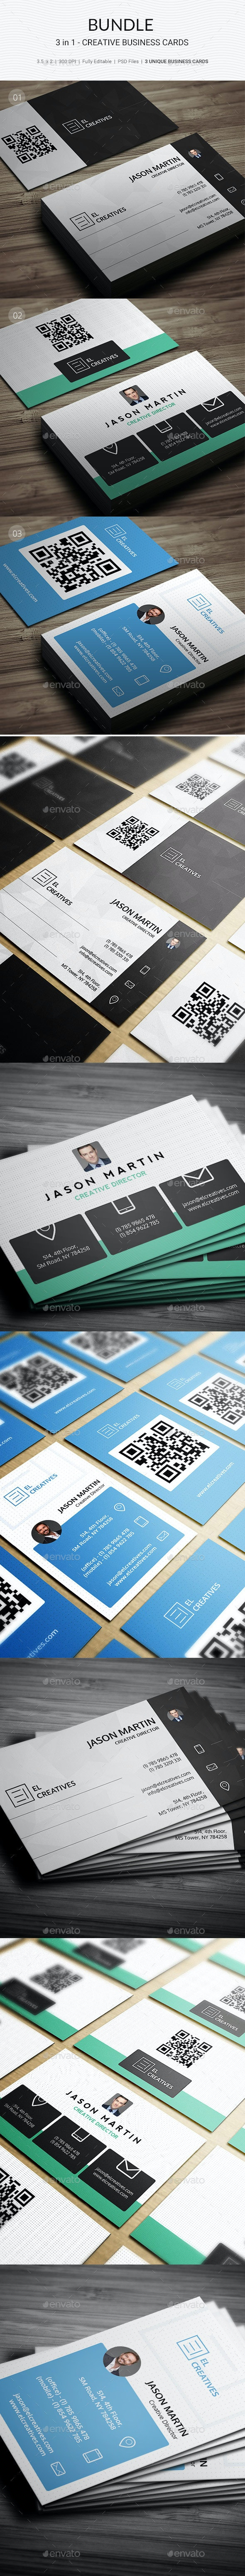 Bundle - 3 in 1 - Prime Creative Business Cards - 178 - Creative Business Cards